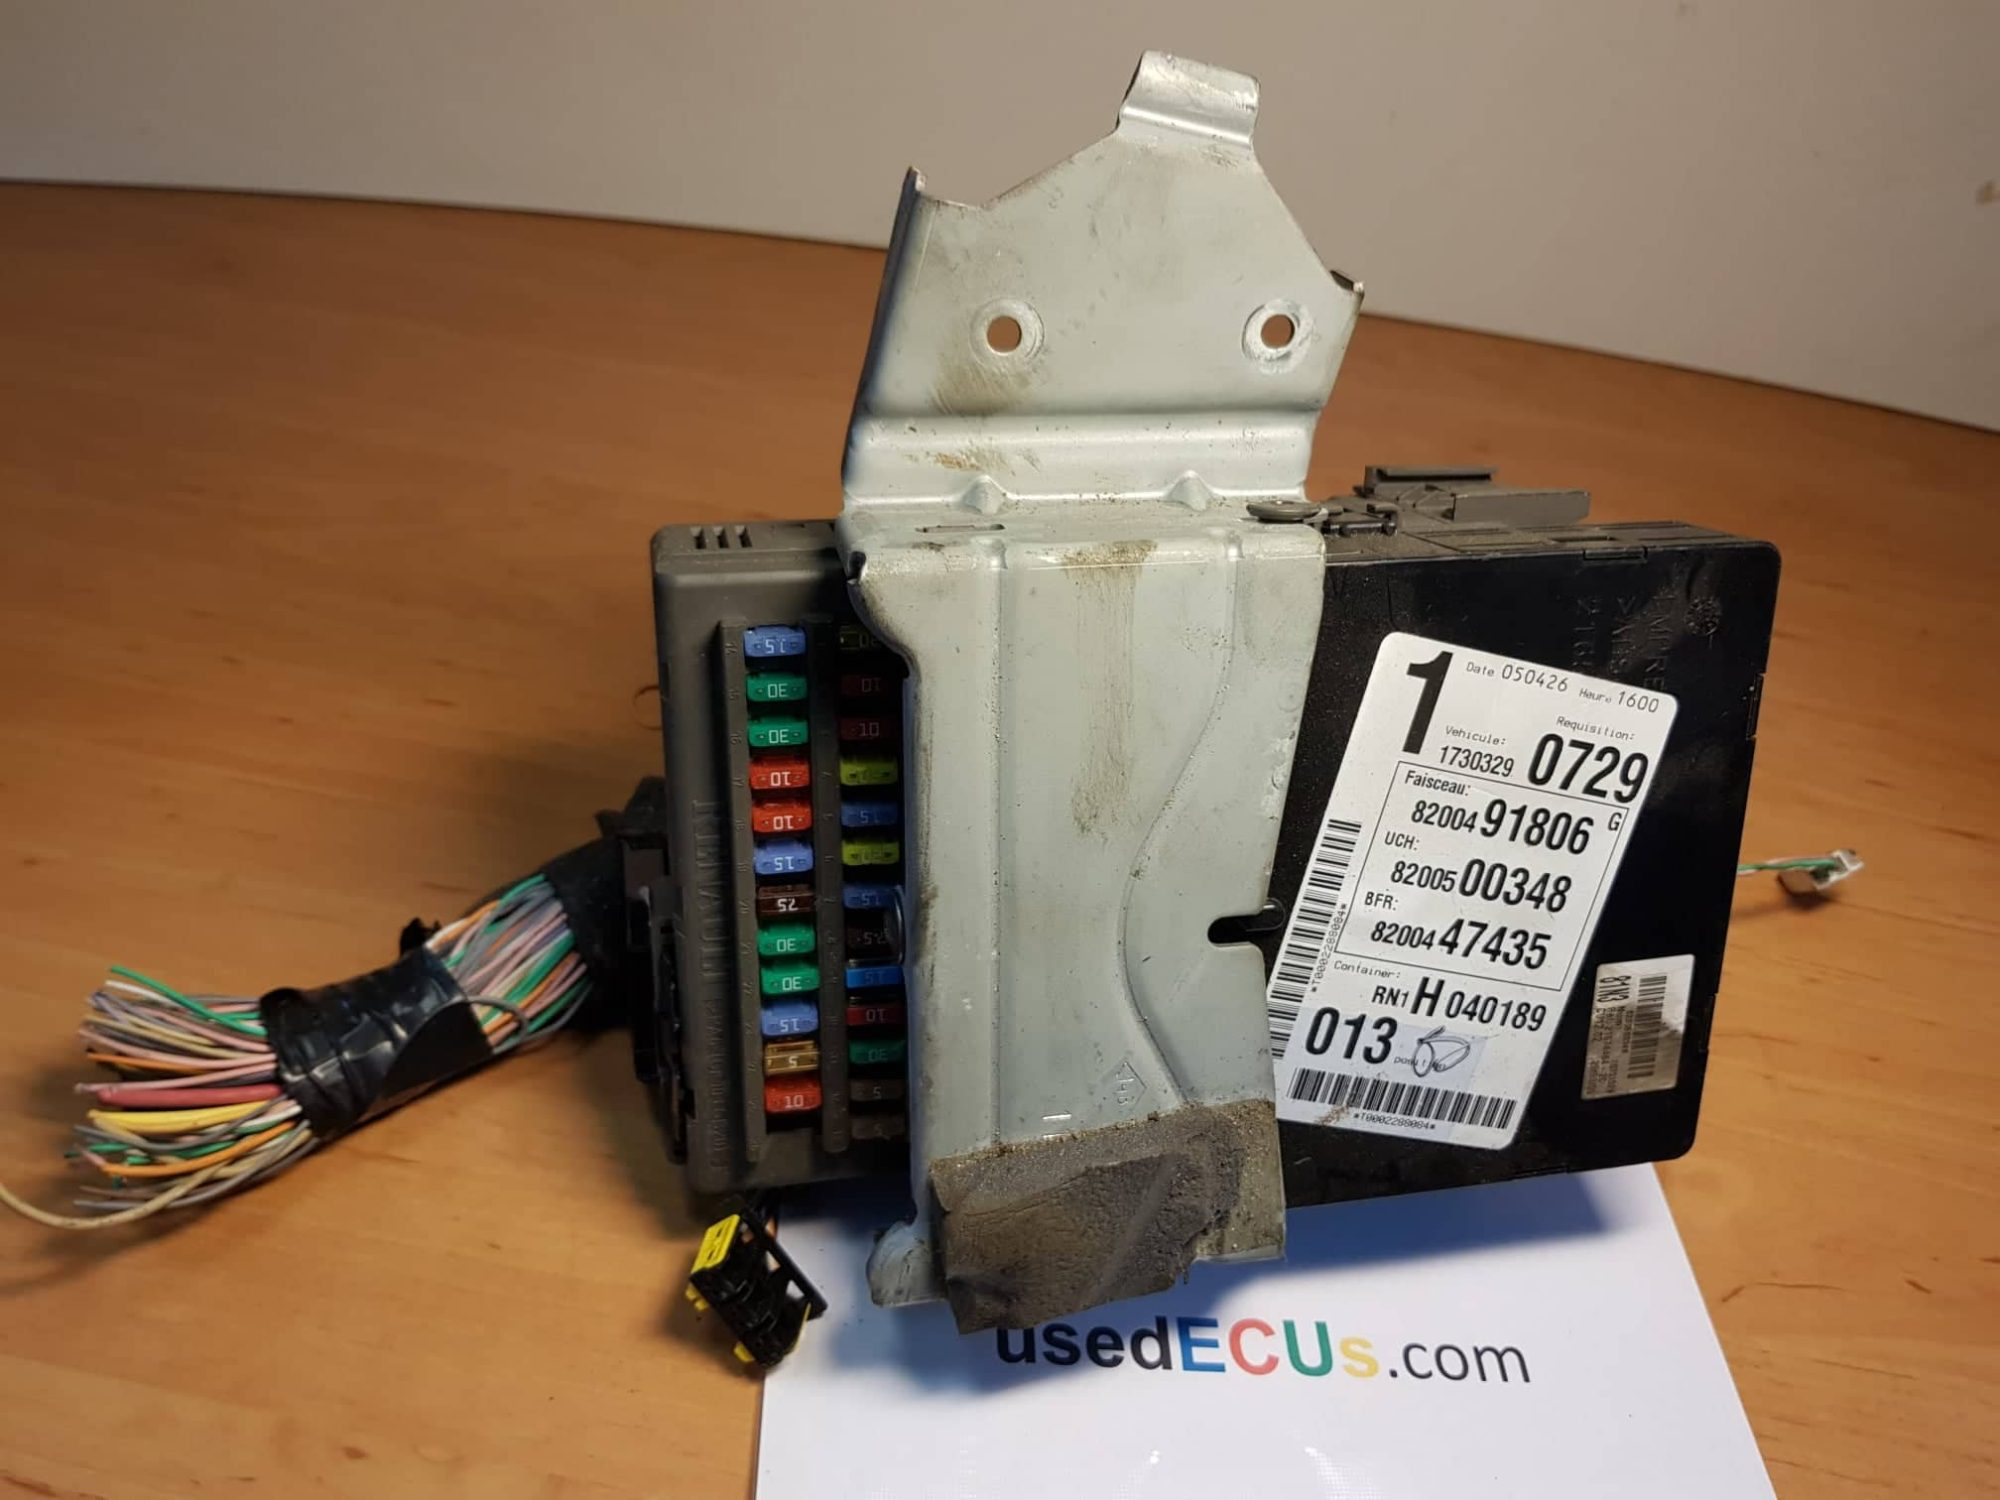 hight resolution of renault laguna mk2 espace mk4 2002 08 relay fuse box article 518832118 8200491806 88200500348 8200500348